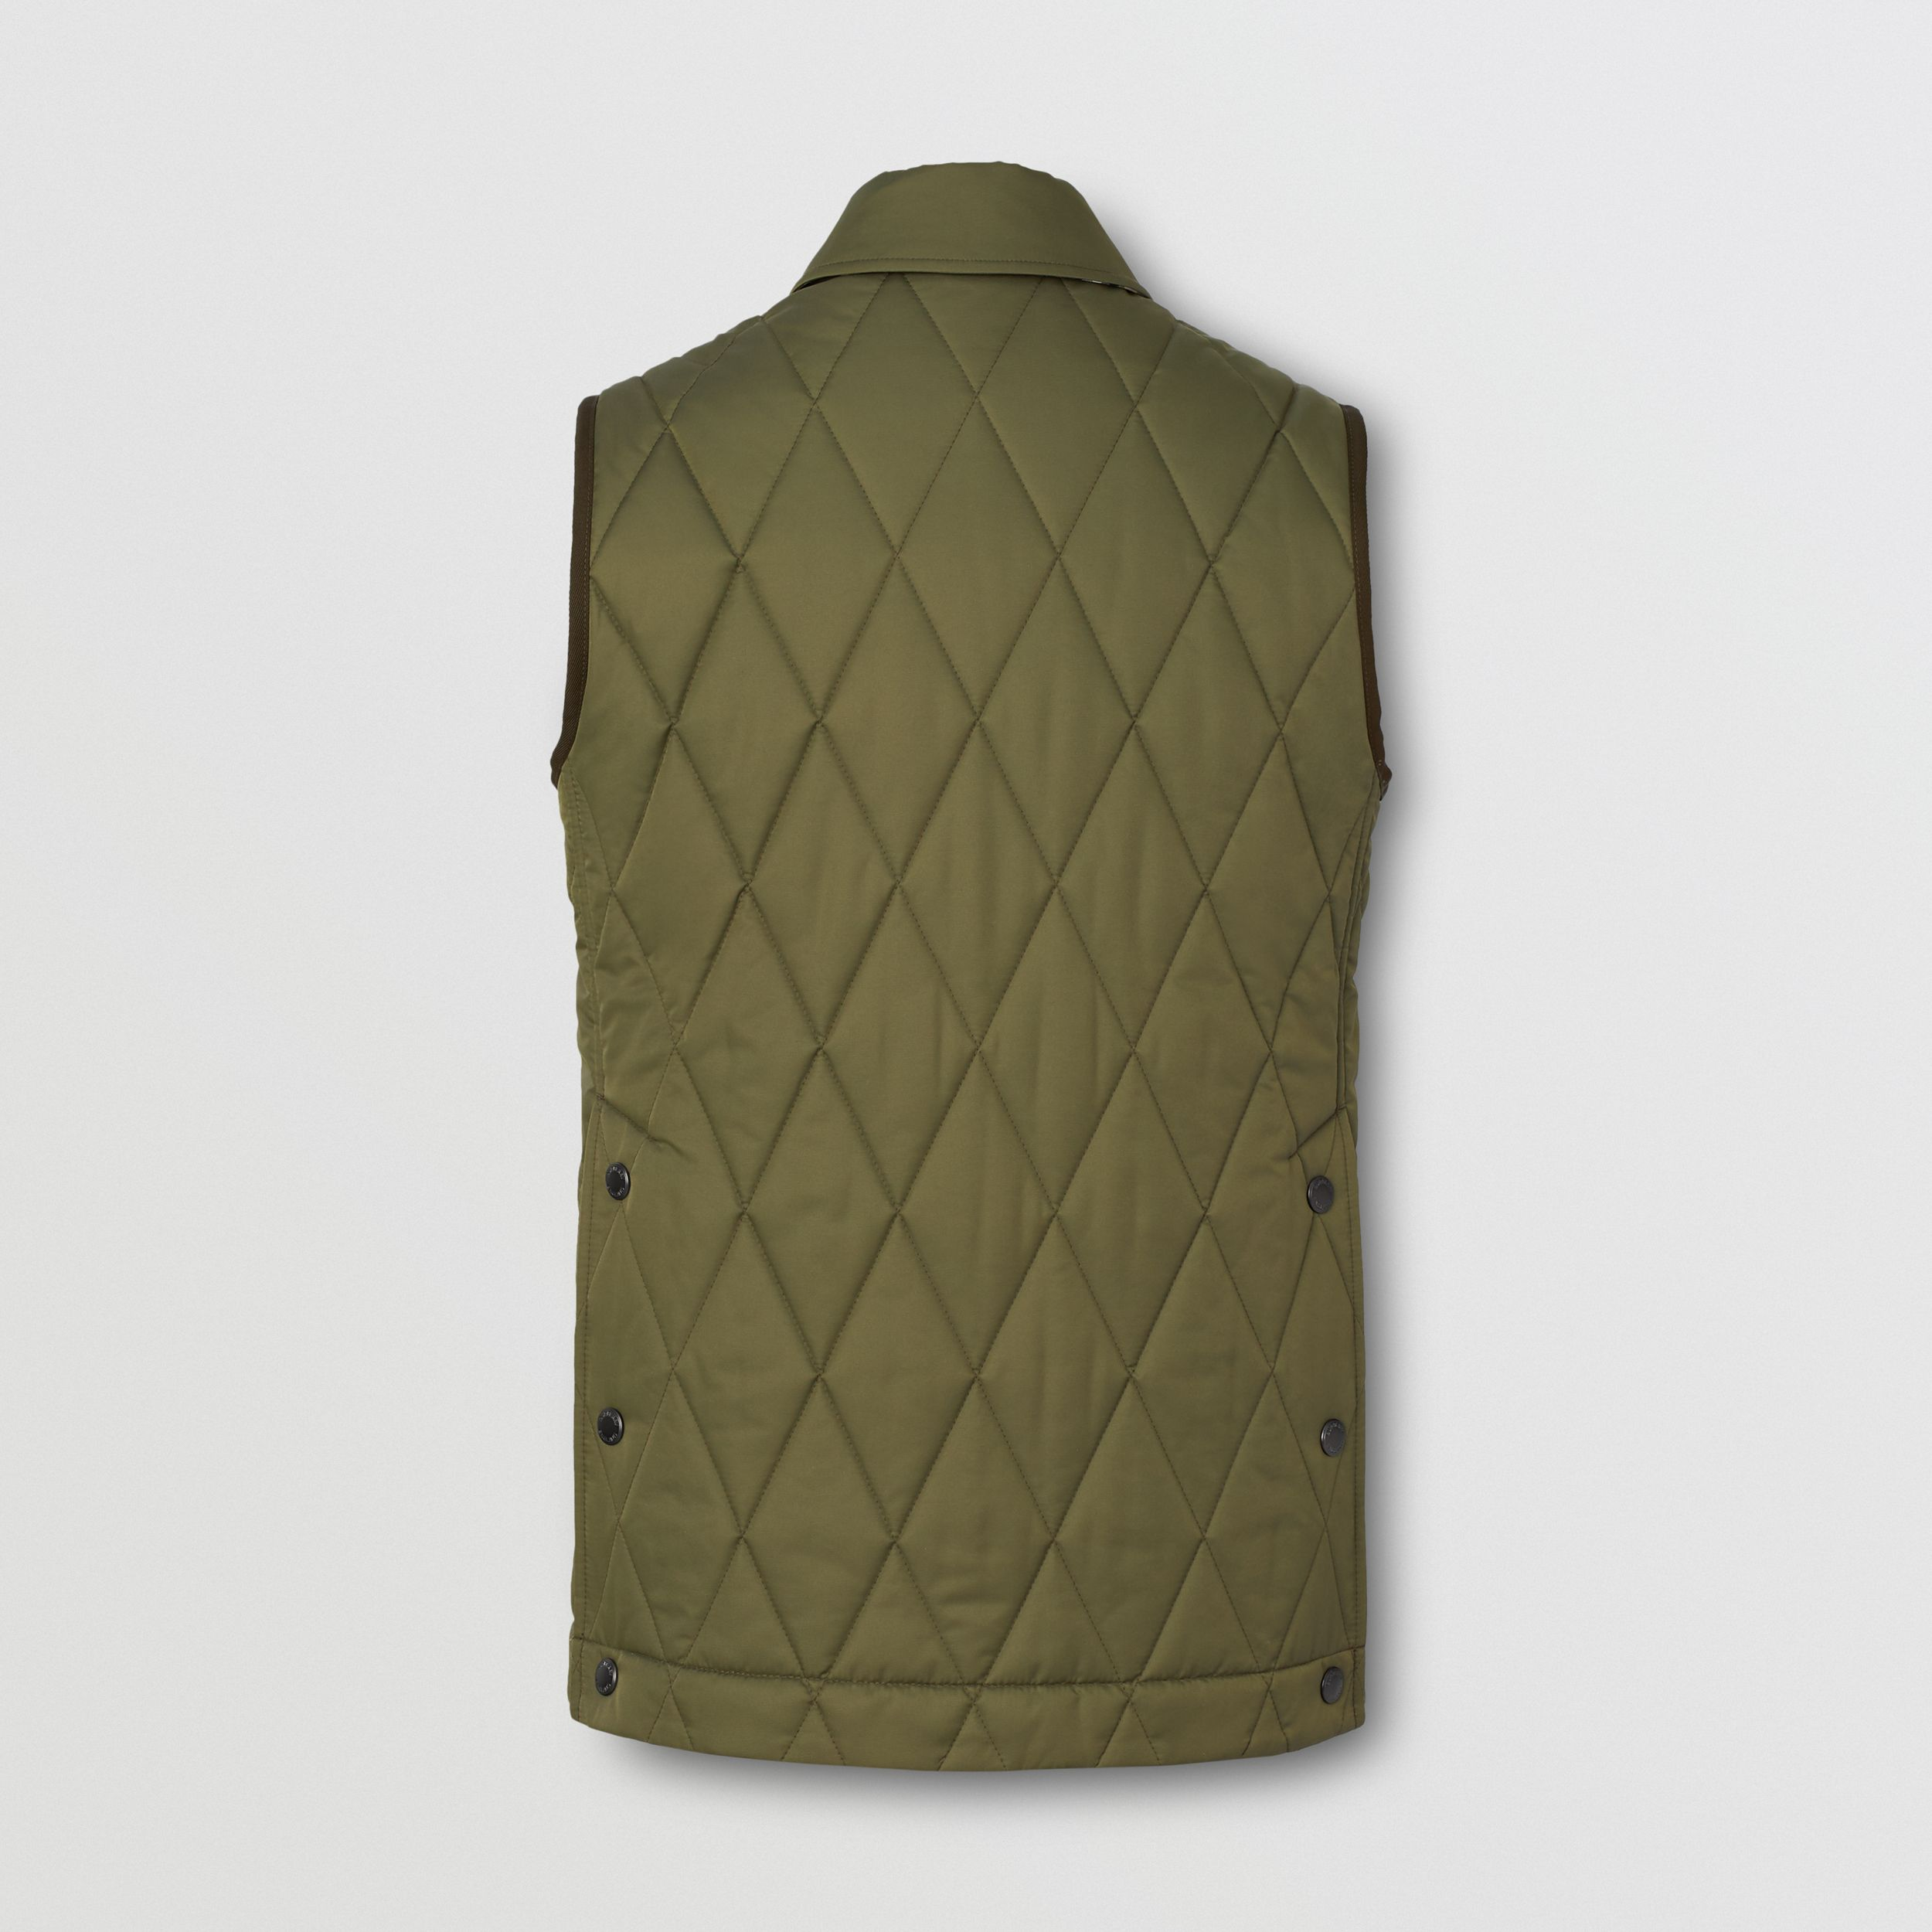 Diamond Quilted Thermoregulated Gilet in Olive Green - Women | Burberry - 2